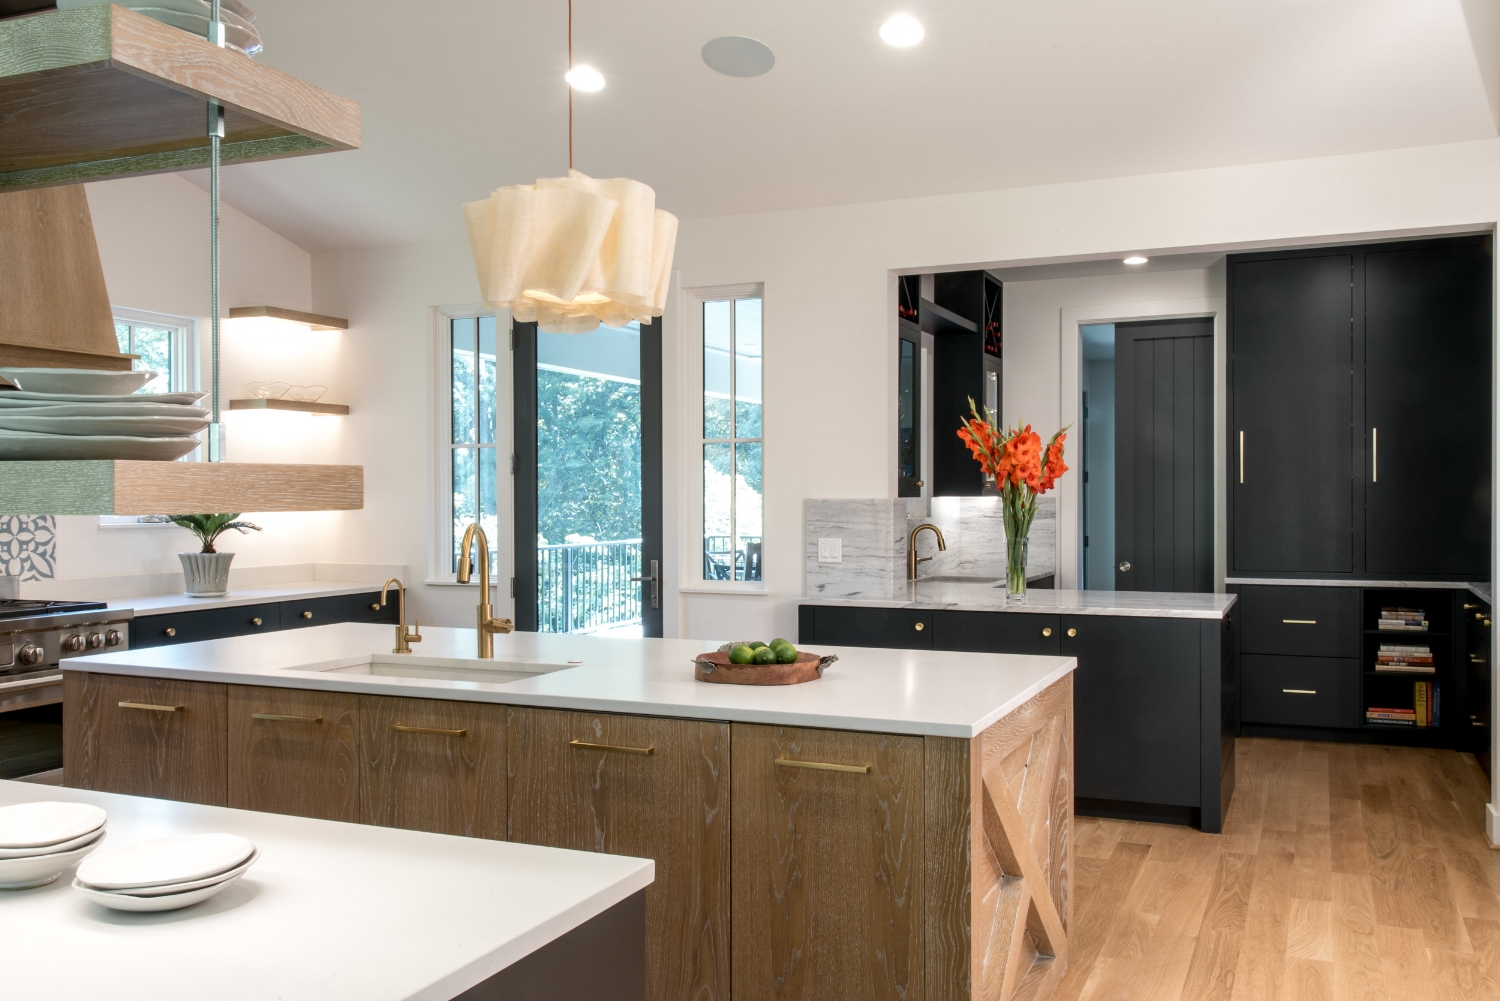 Matthews - Oak Valley kitchen and bath-8745.jpg